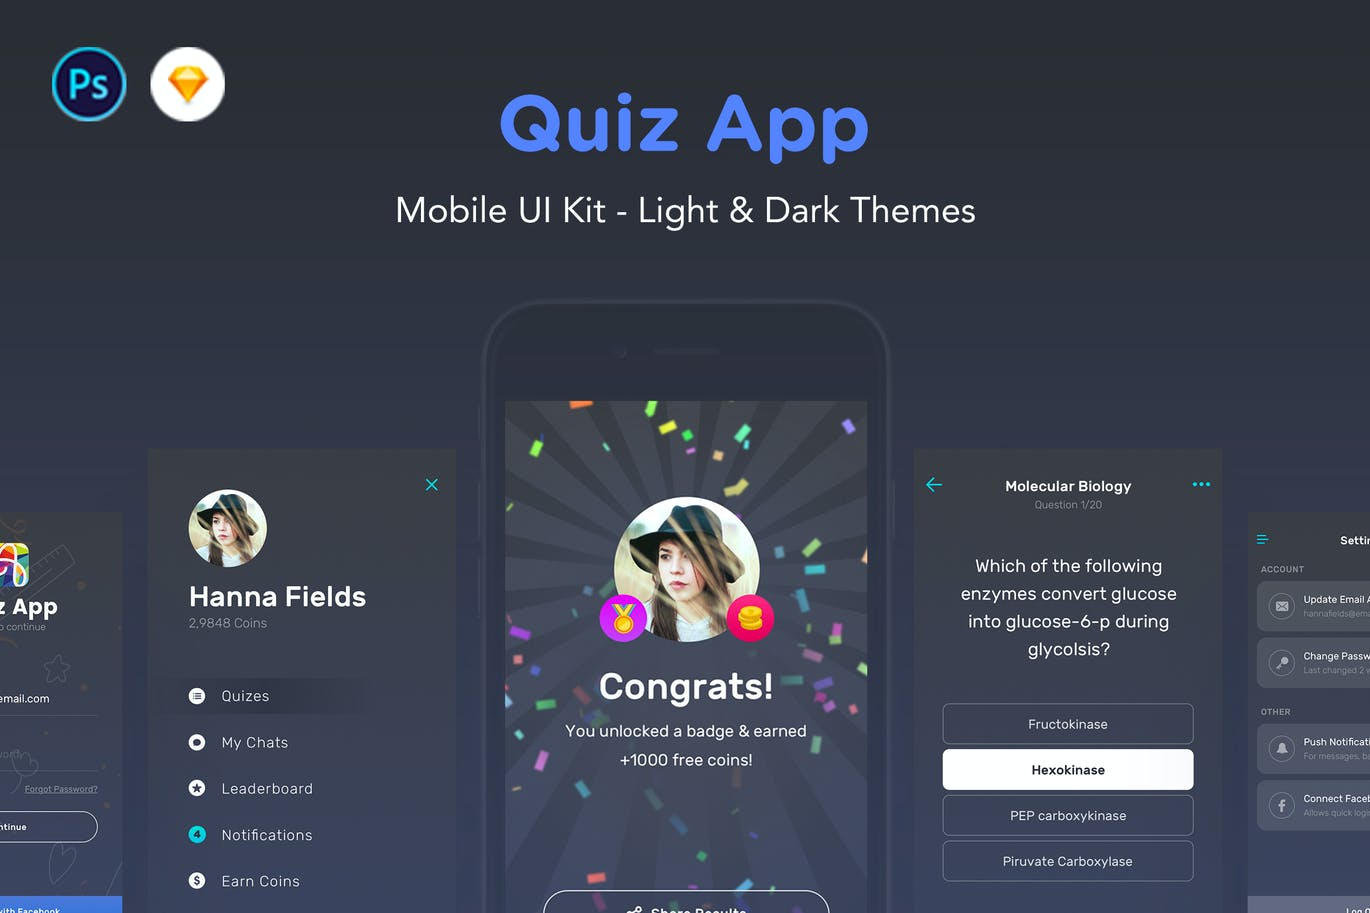 Top 50 Free Mobile Ui Kits For Ios Android 2019 Download Image Amp Circuit Wiring Diagram Pc Iphone And Now